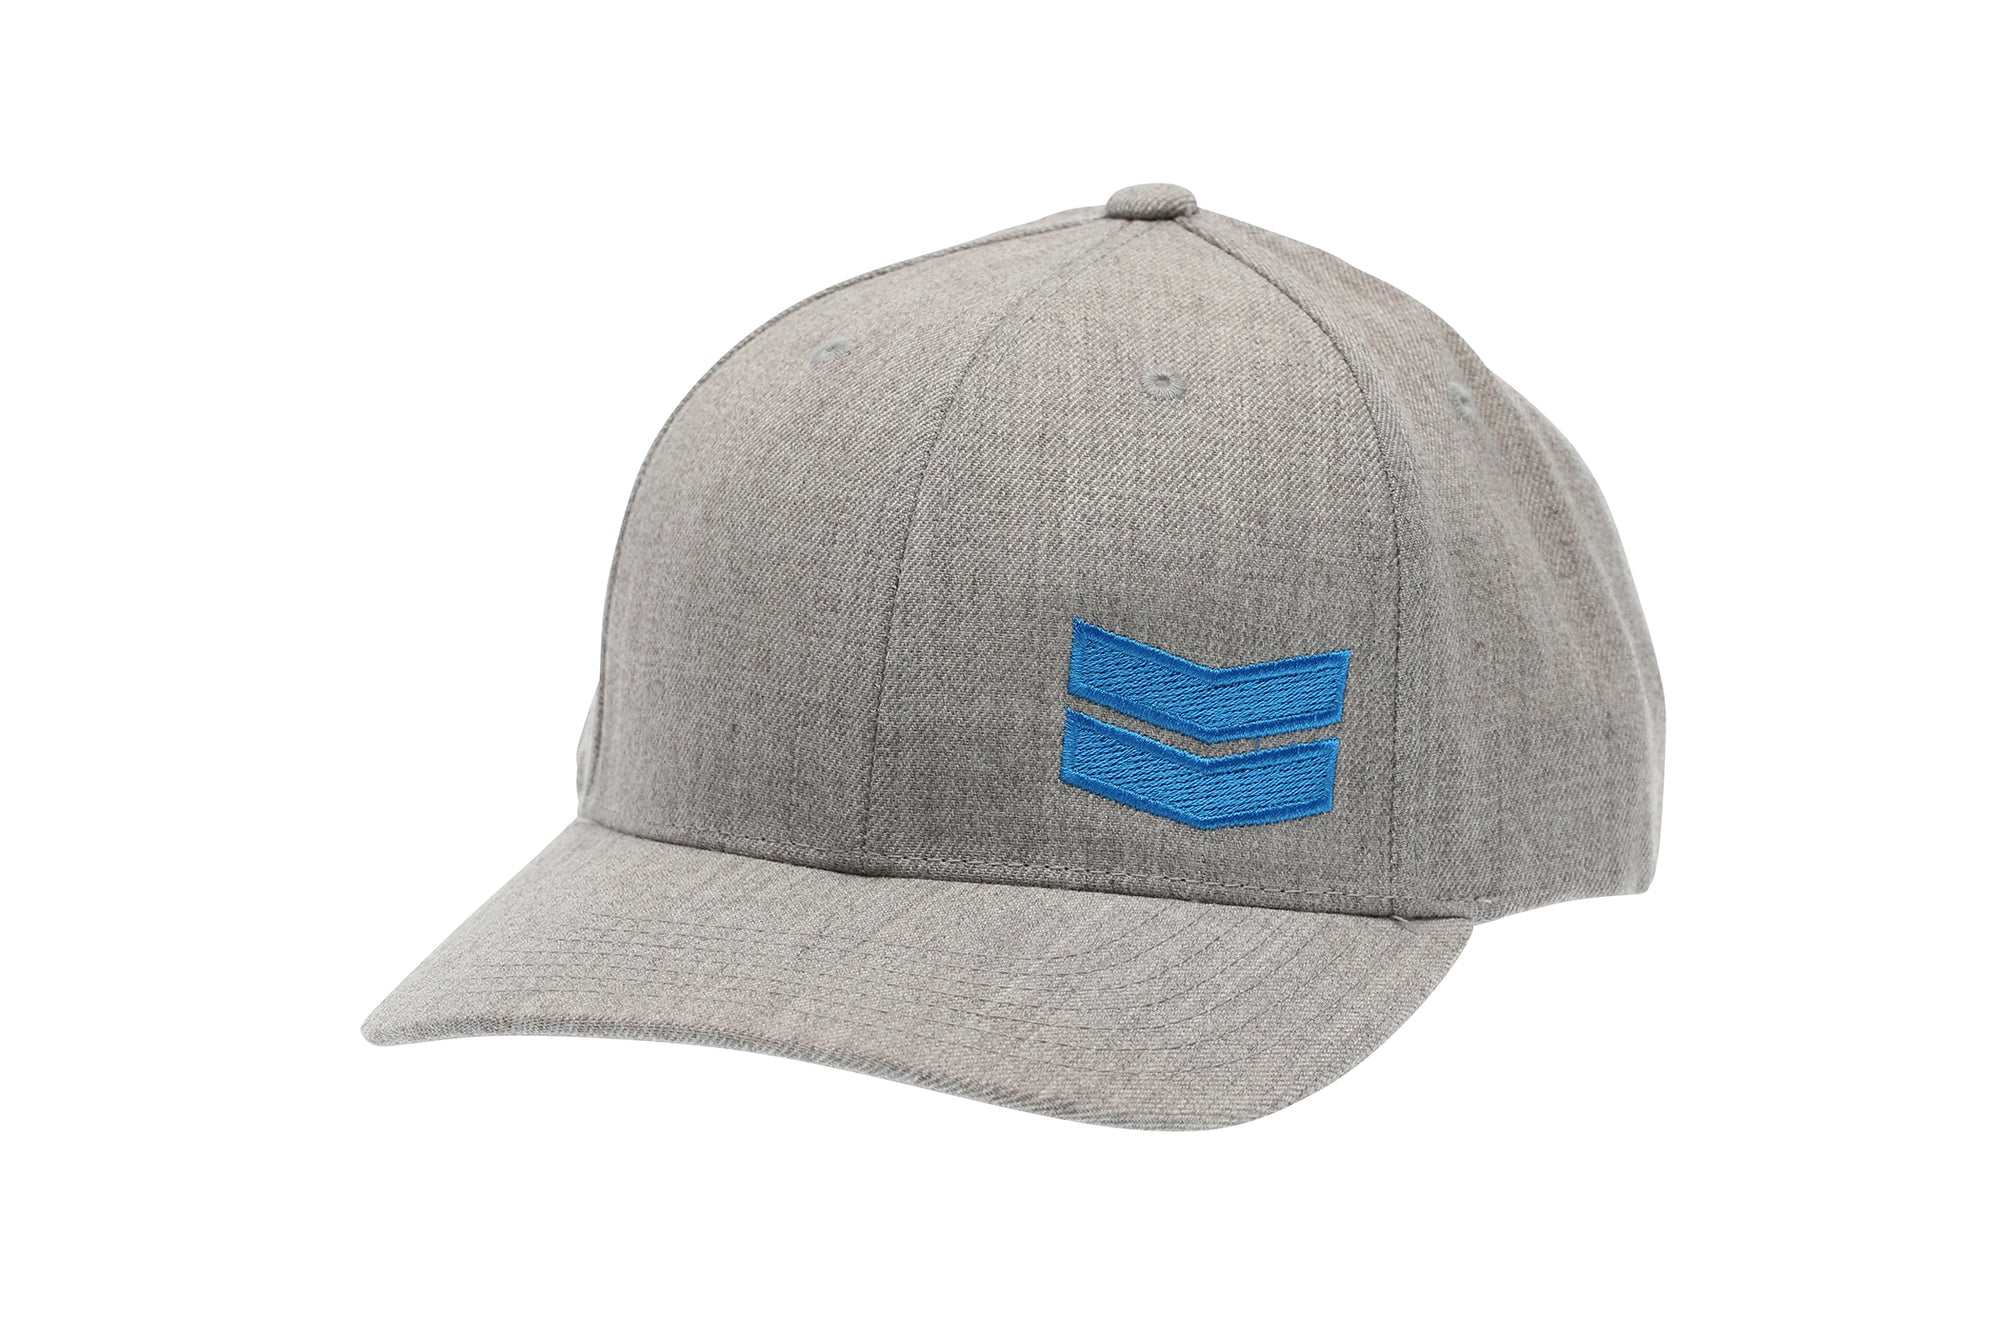 Chevron Curved Bill Snap Back Hat